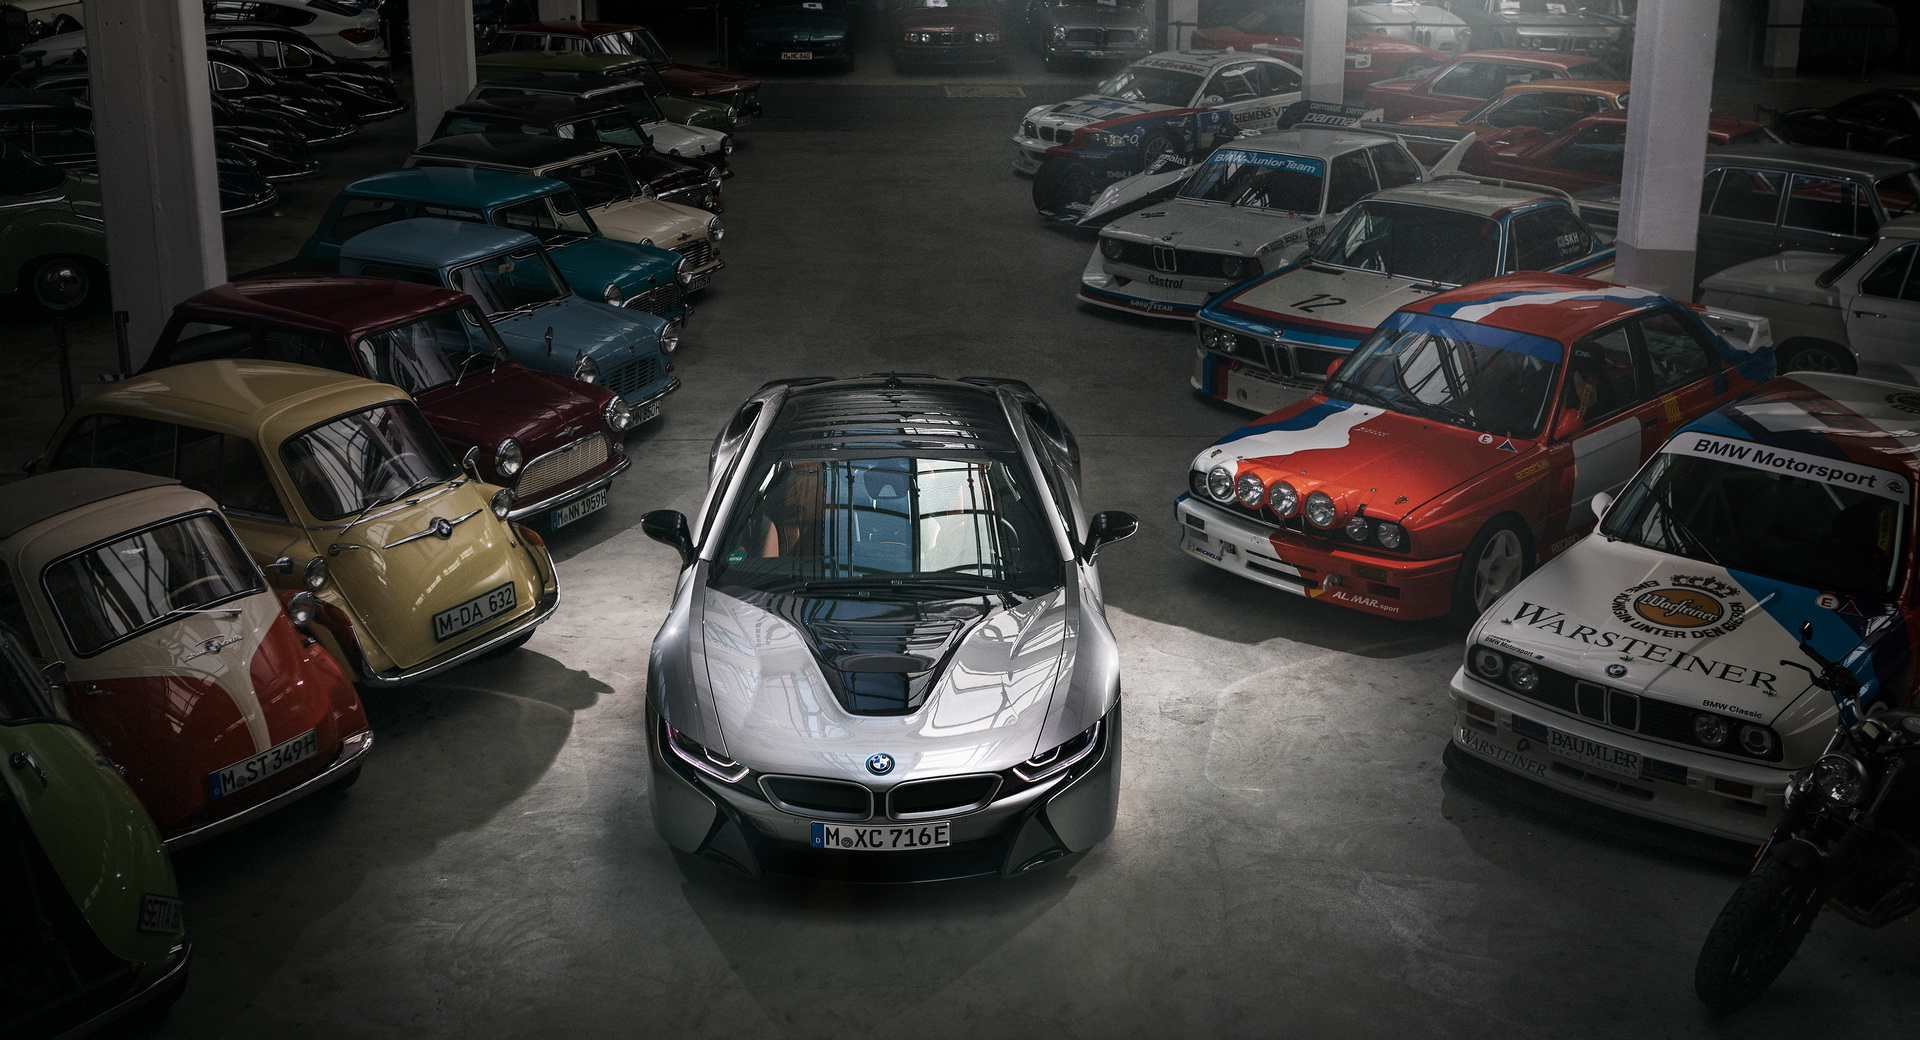 A year and a half ago, Alpina devised a complex performance upgrade plan for the BMW i8 hybrid coupe, but ditched it before production. Read on to find out why.